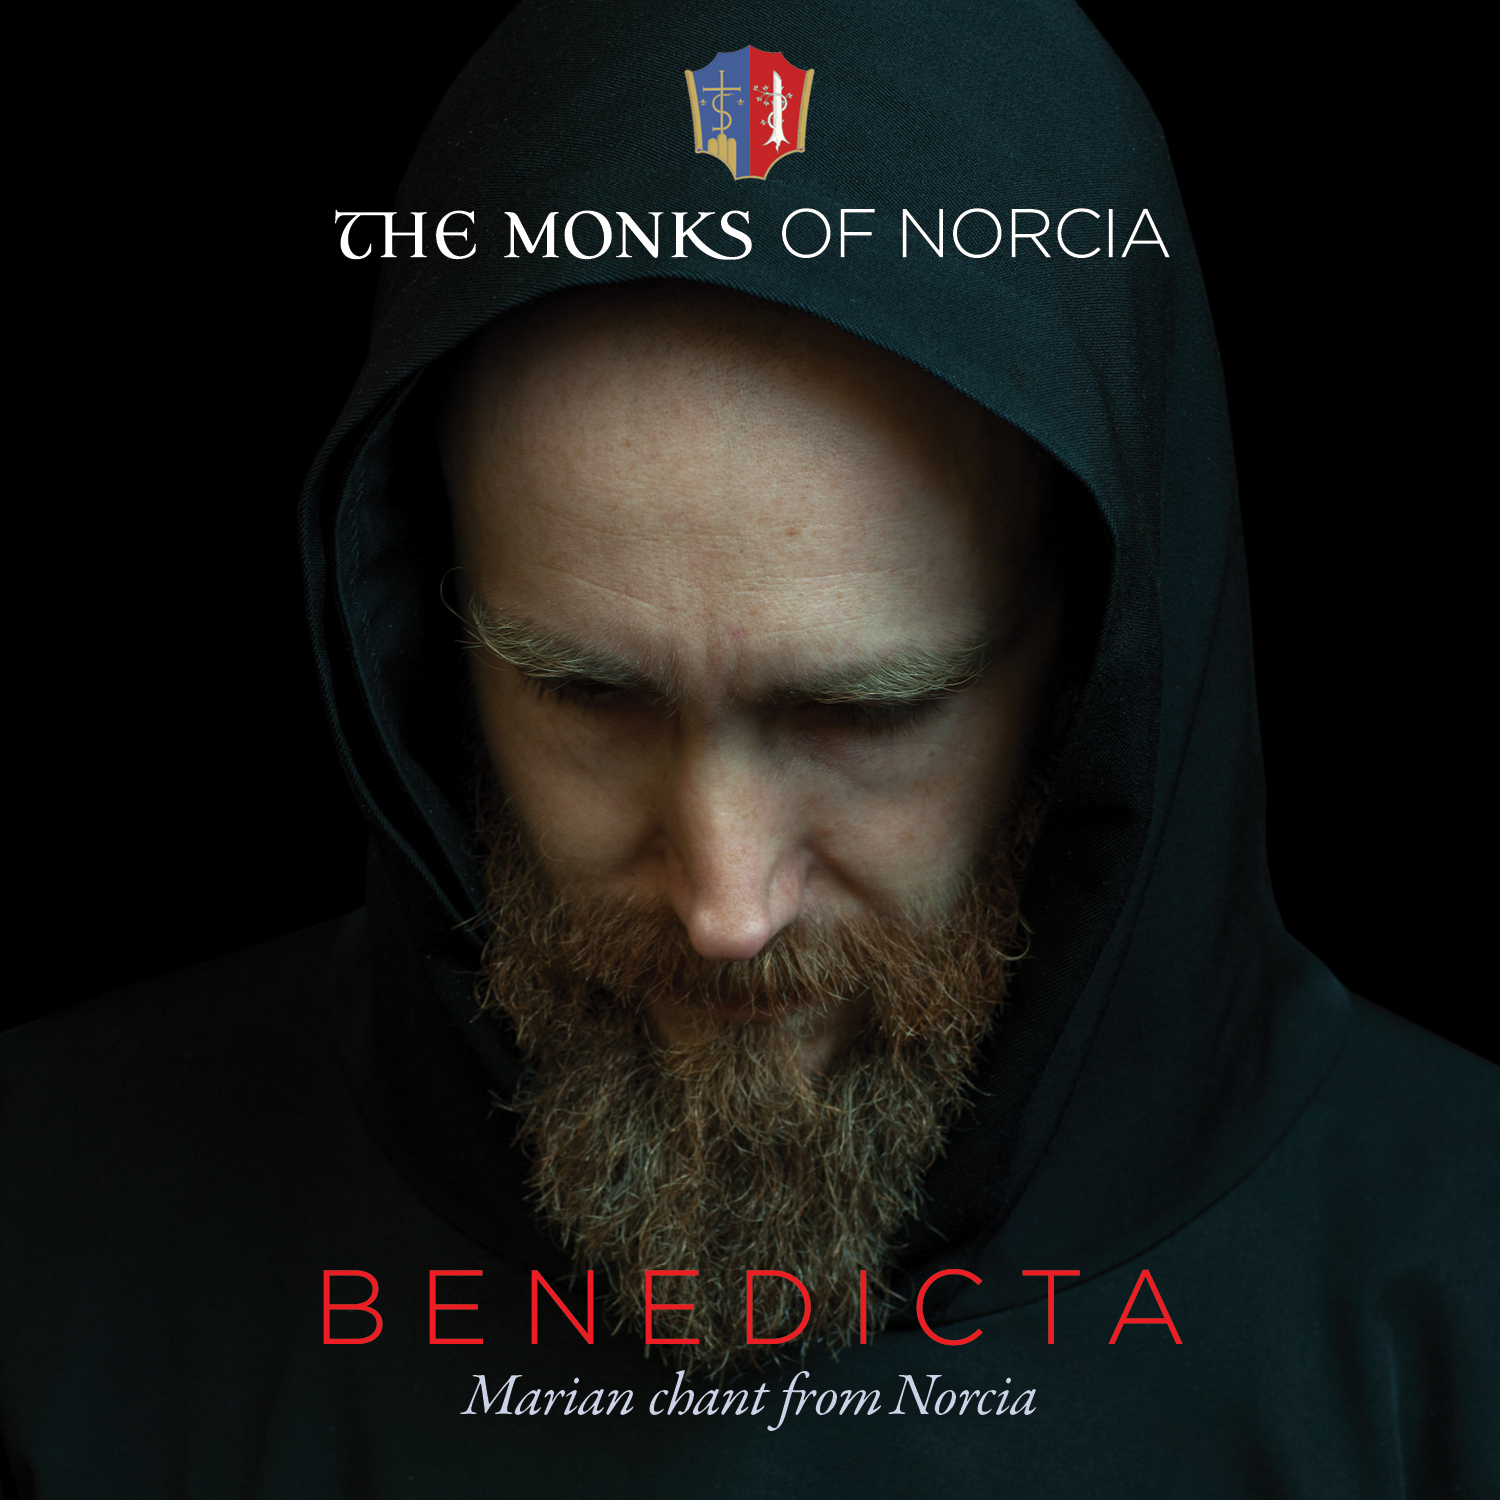 Album cover: The Monks of Norcia